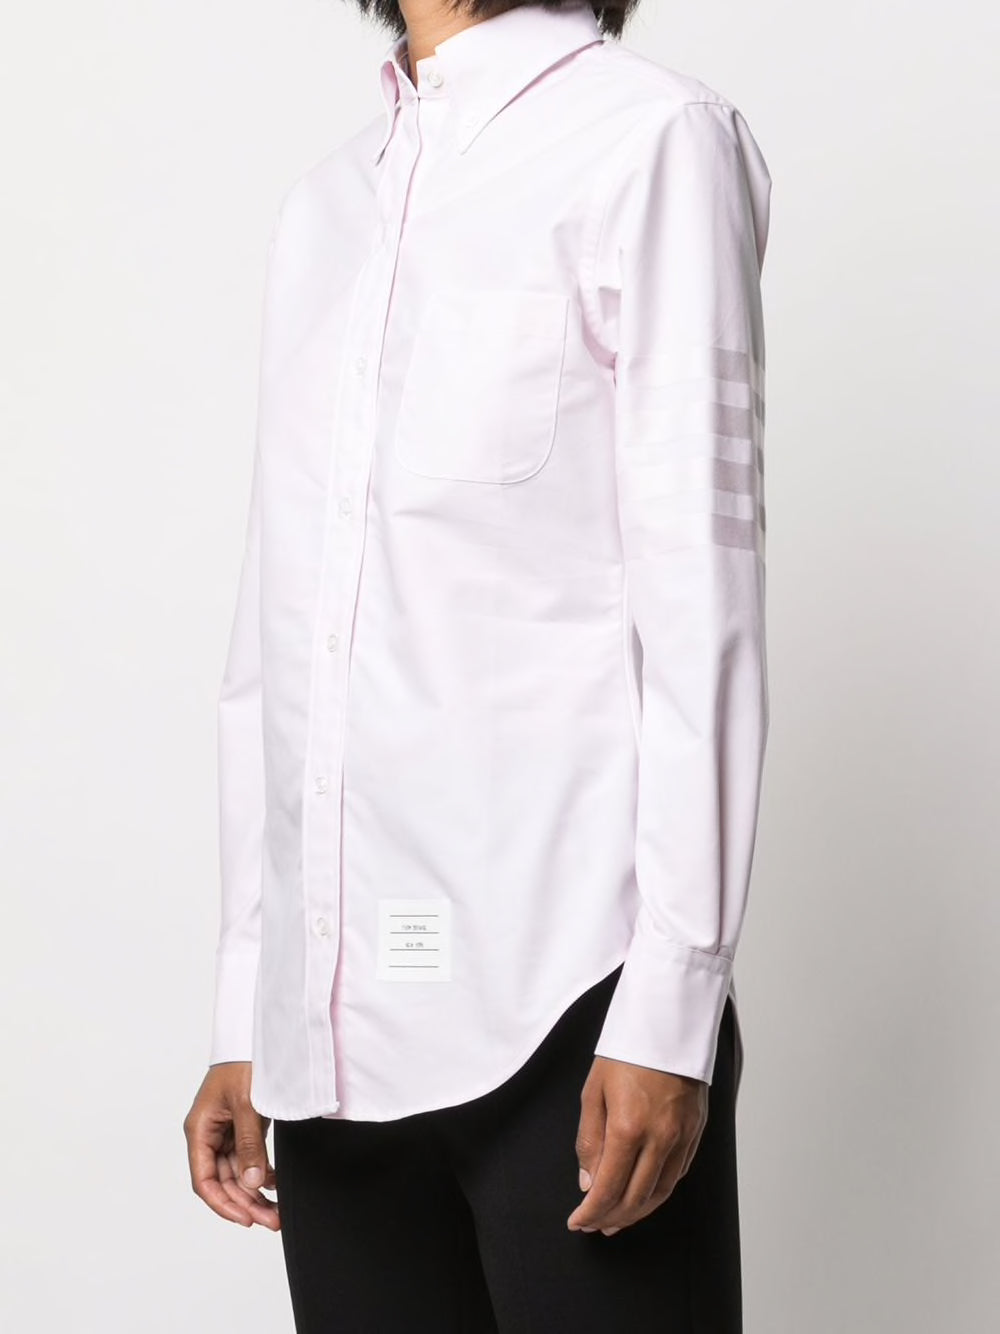 THOM BROWNE WOMEN CLASSIC LONG SLEEVE POINT COLLAR BUTTONDOWN SHIRT IN OXFORD SATIN SEAVE ENGINEERED 4 BAR STRIPE